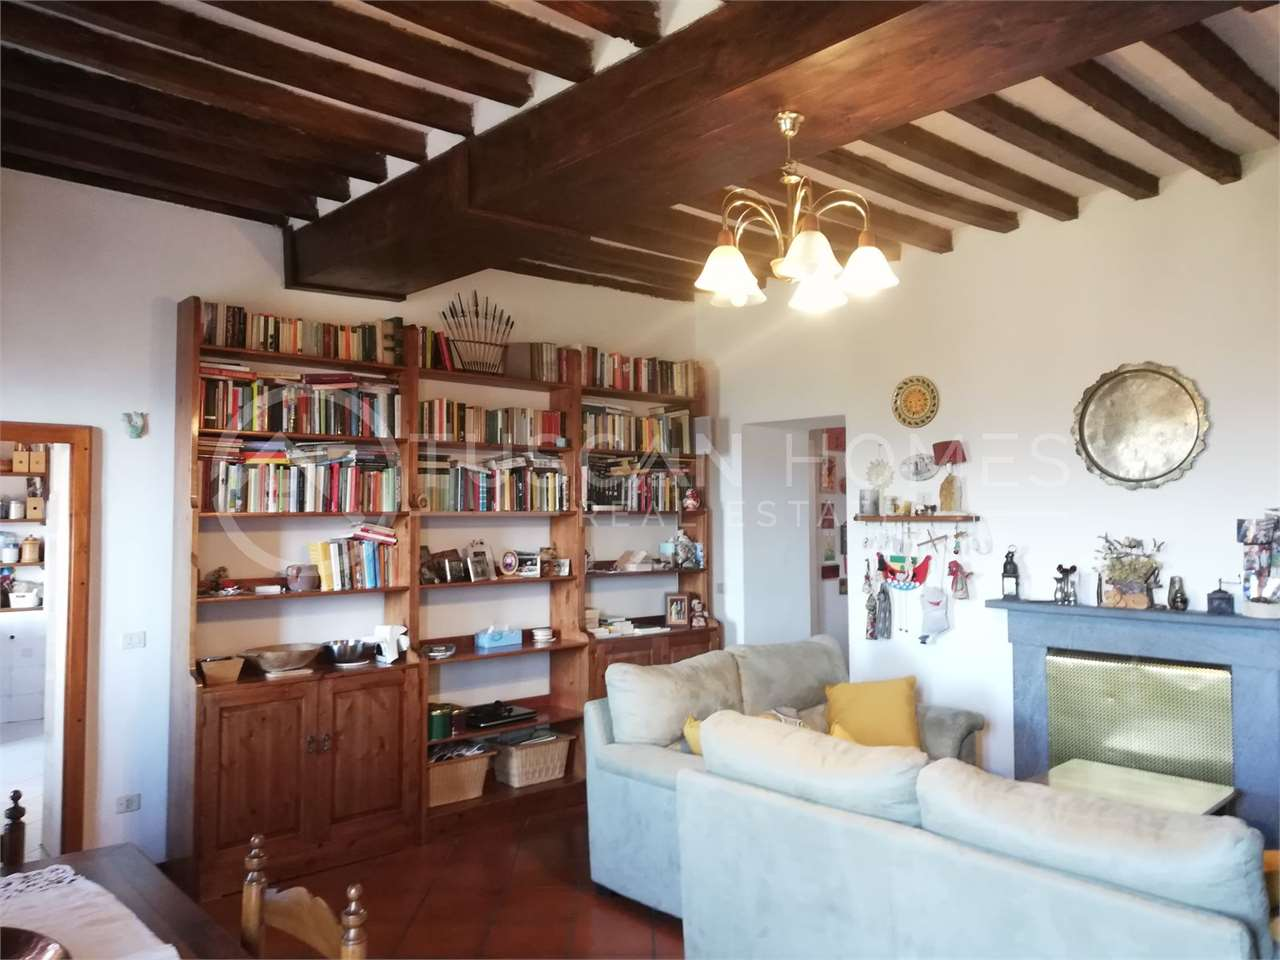 Four-bedroom-townhouse-with-panoramic-views-barga-historic-centre-lucca-tuscany-italy-lucca-for-sale